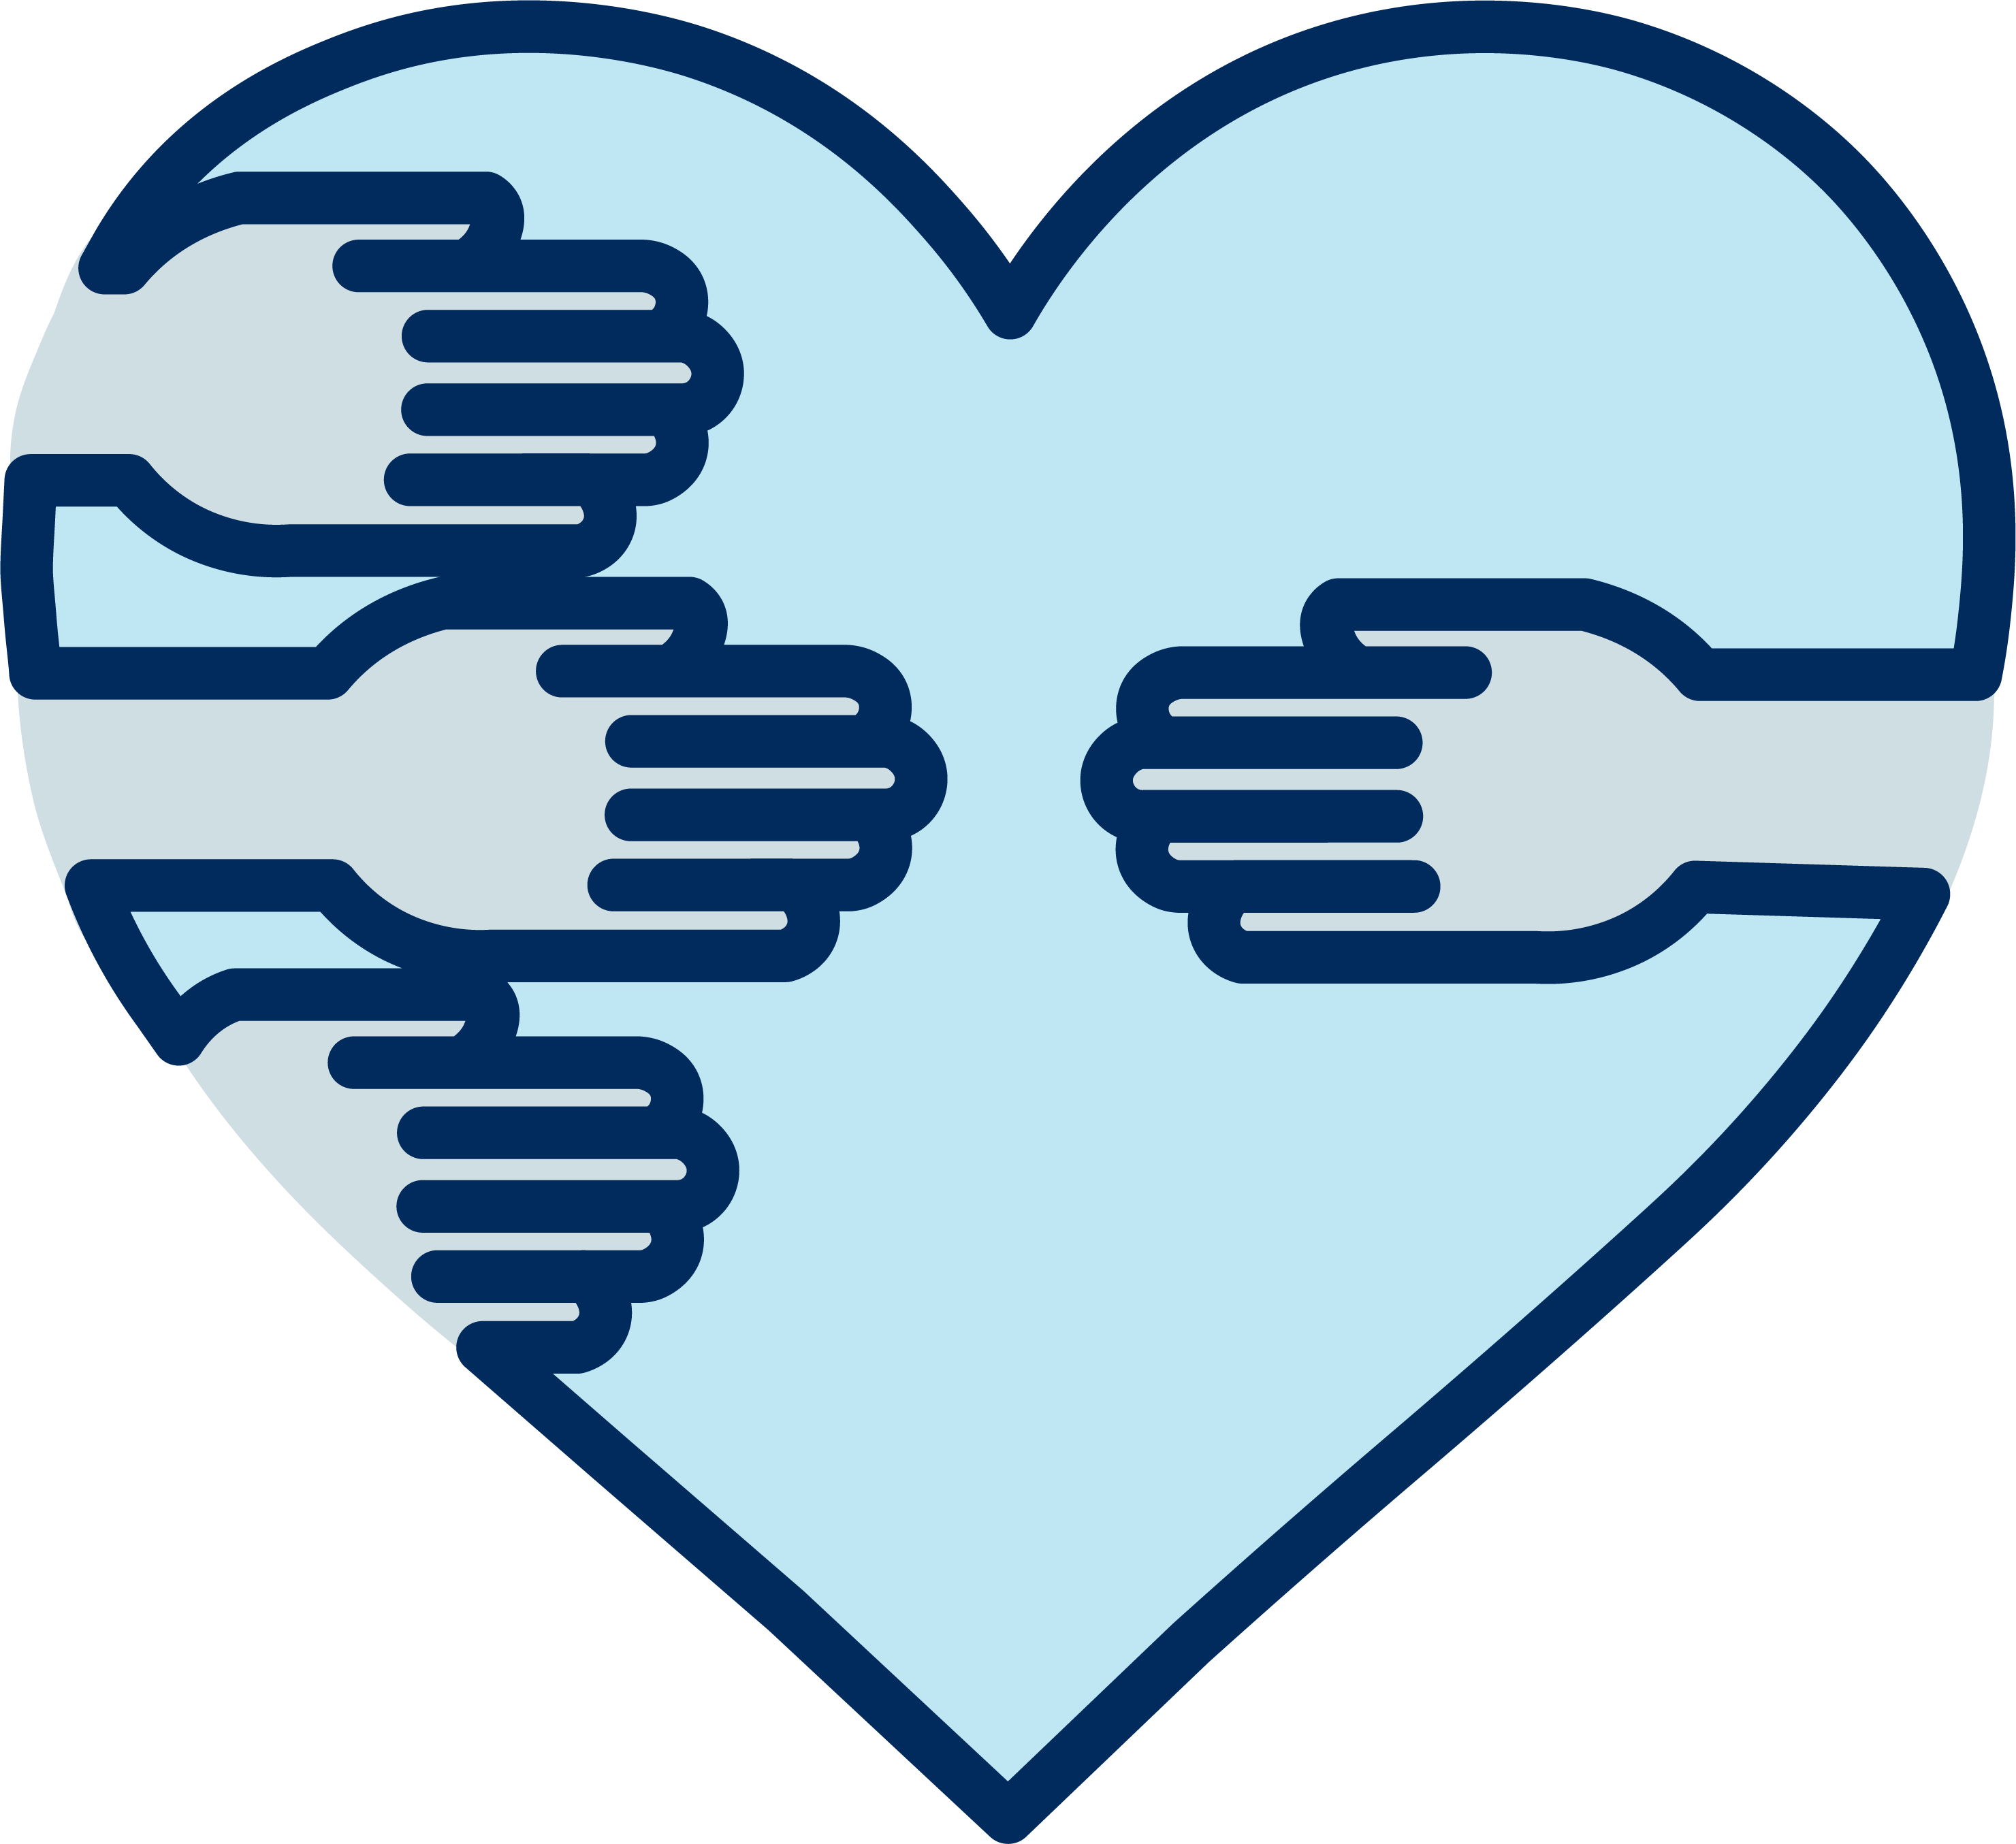 An illustration of hands reaching around a heart towards another individual